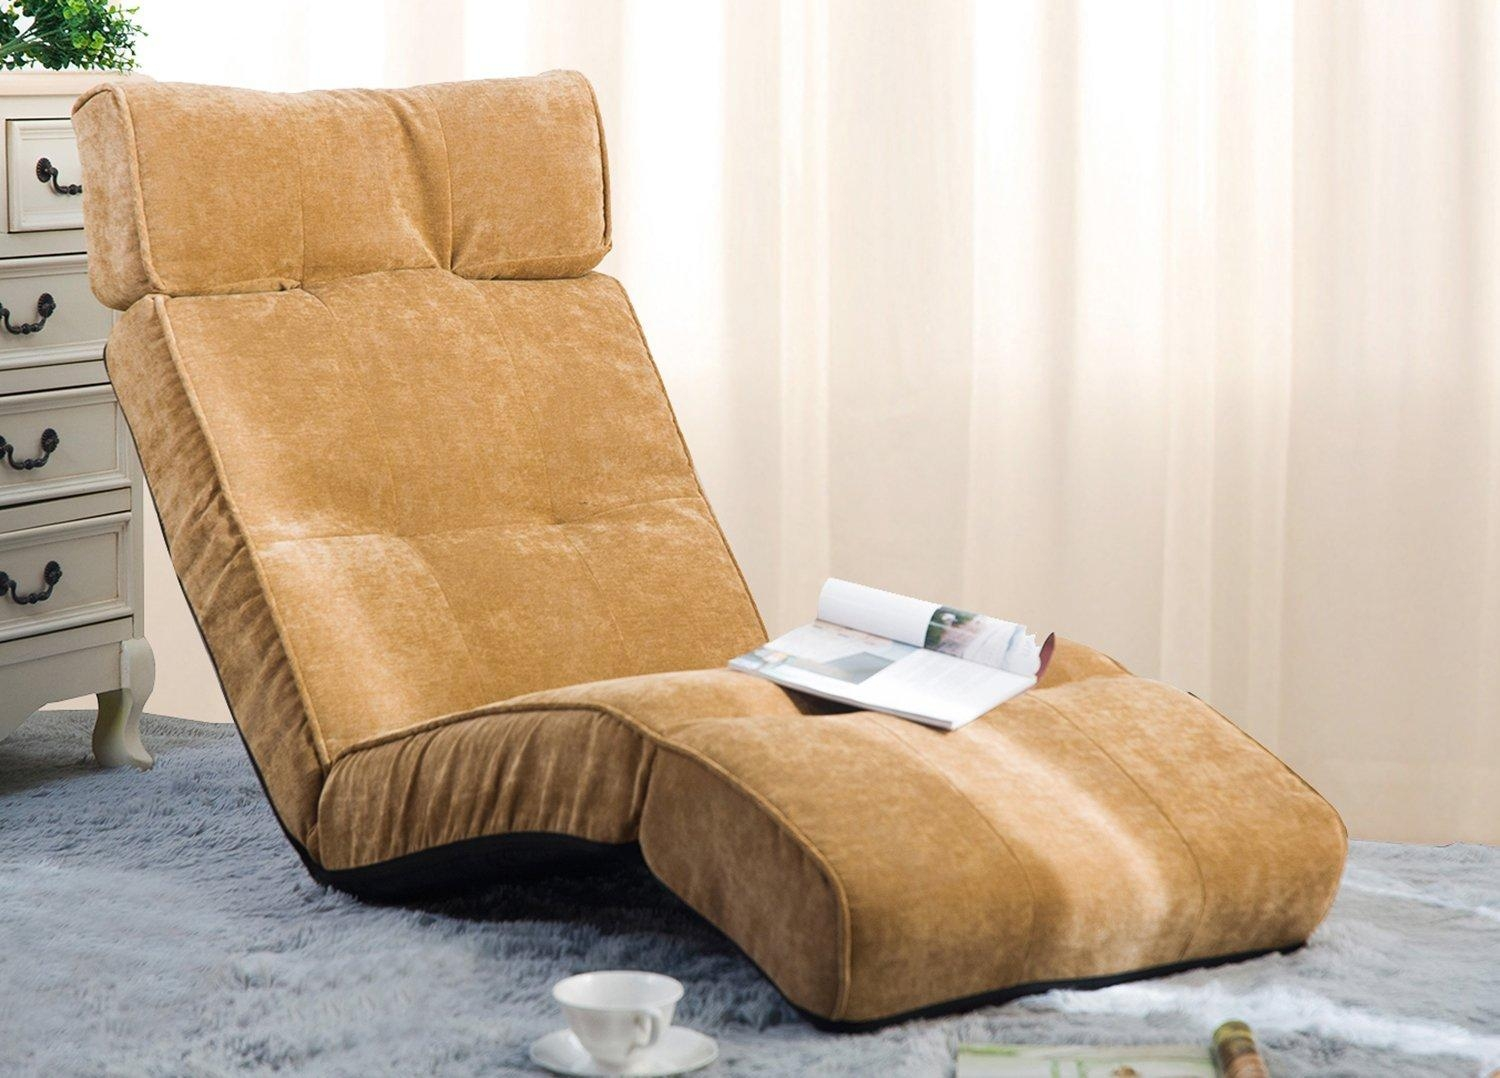 Merax Adjustable Folding Floor Couch Lounger Sofa Chair – Folding Throughout Fold Up Sofa Chairs (View 14 of 22)